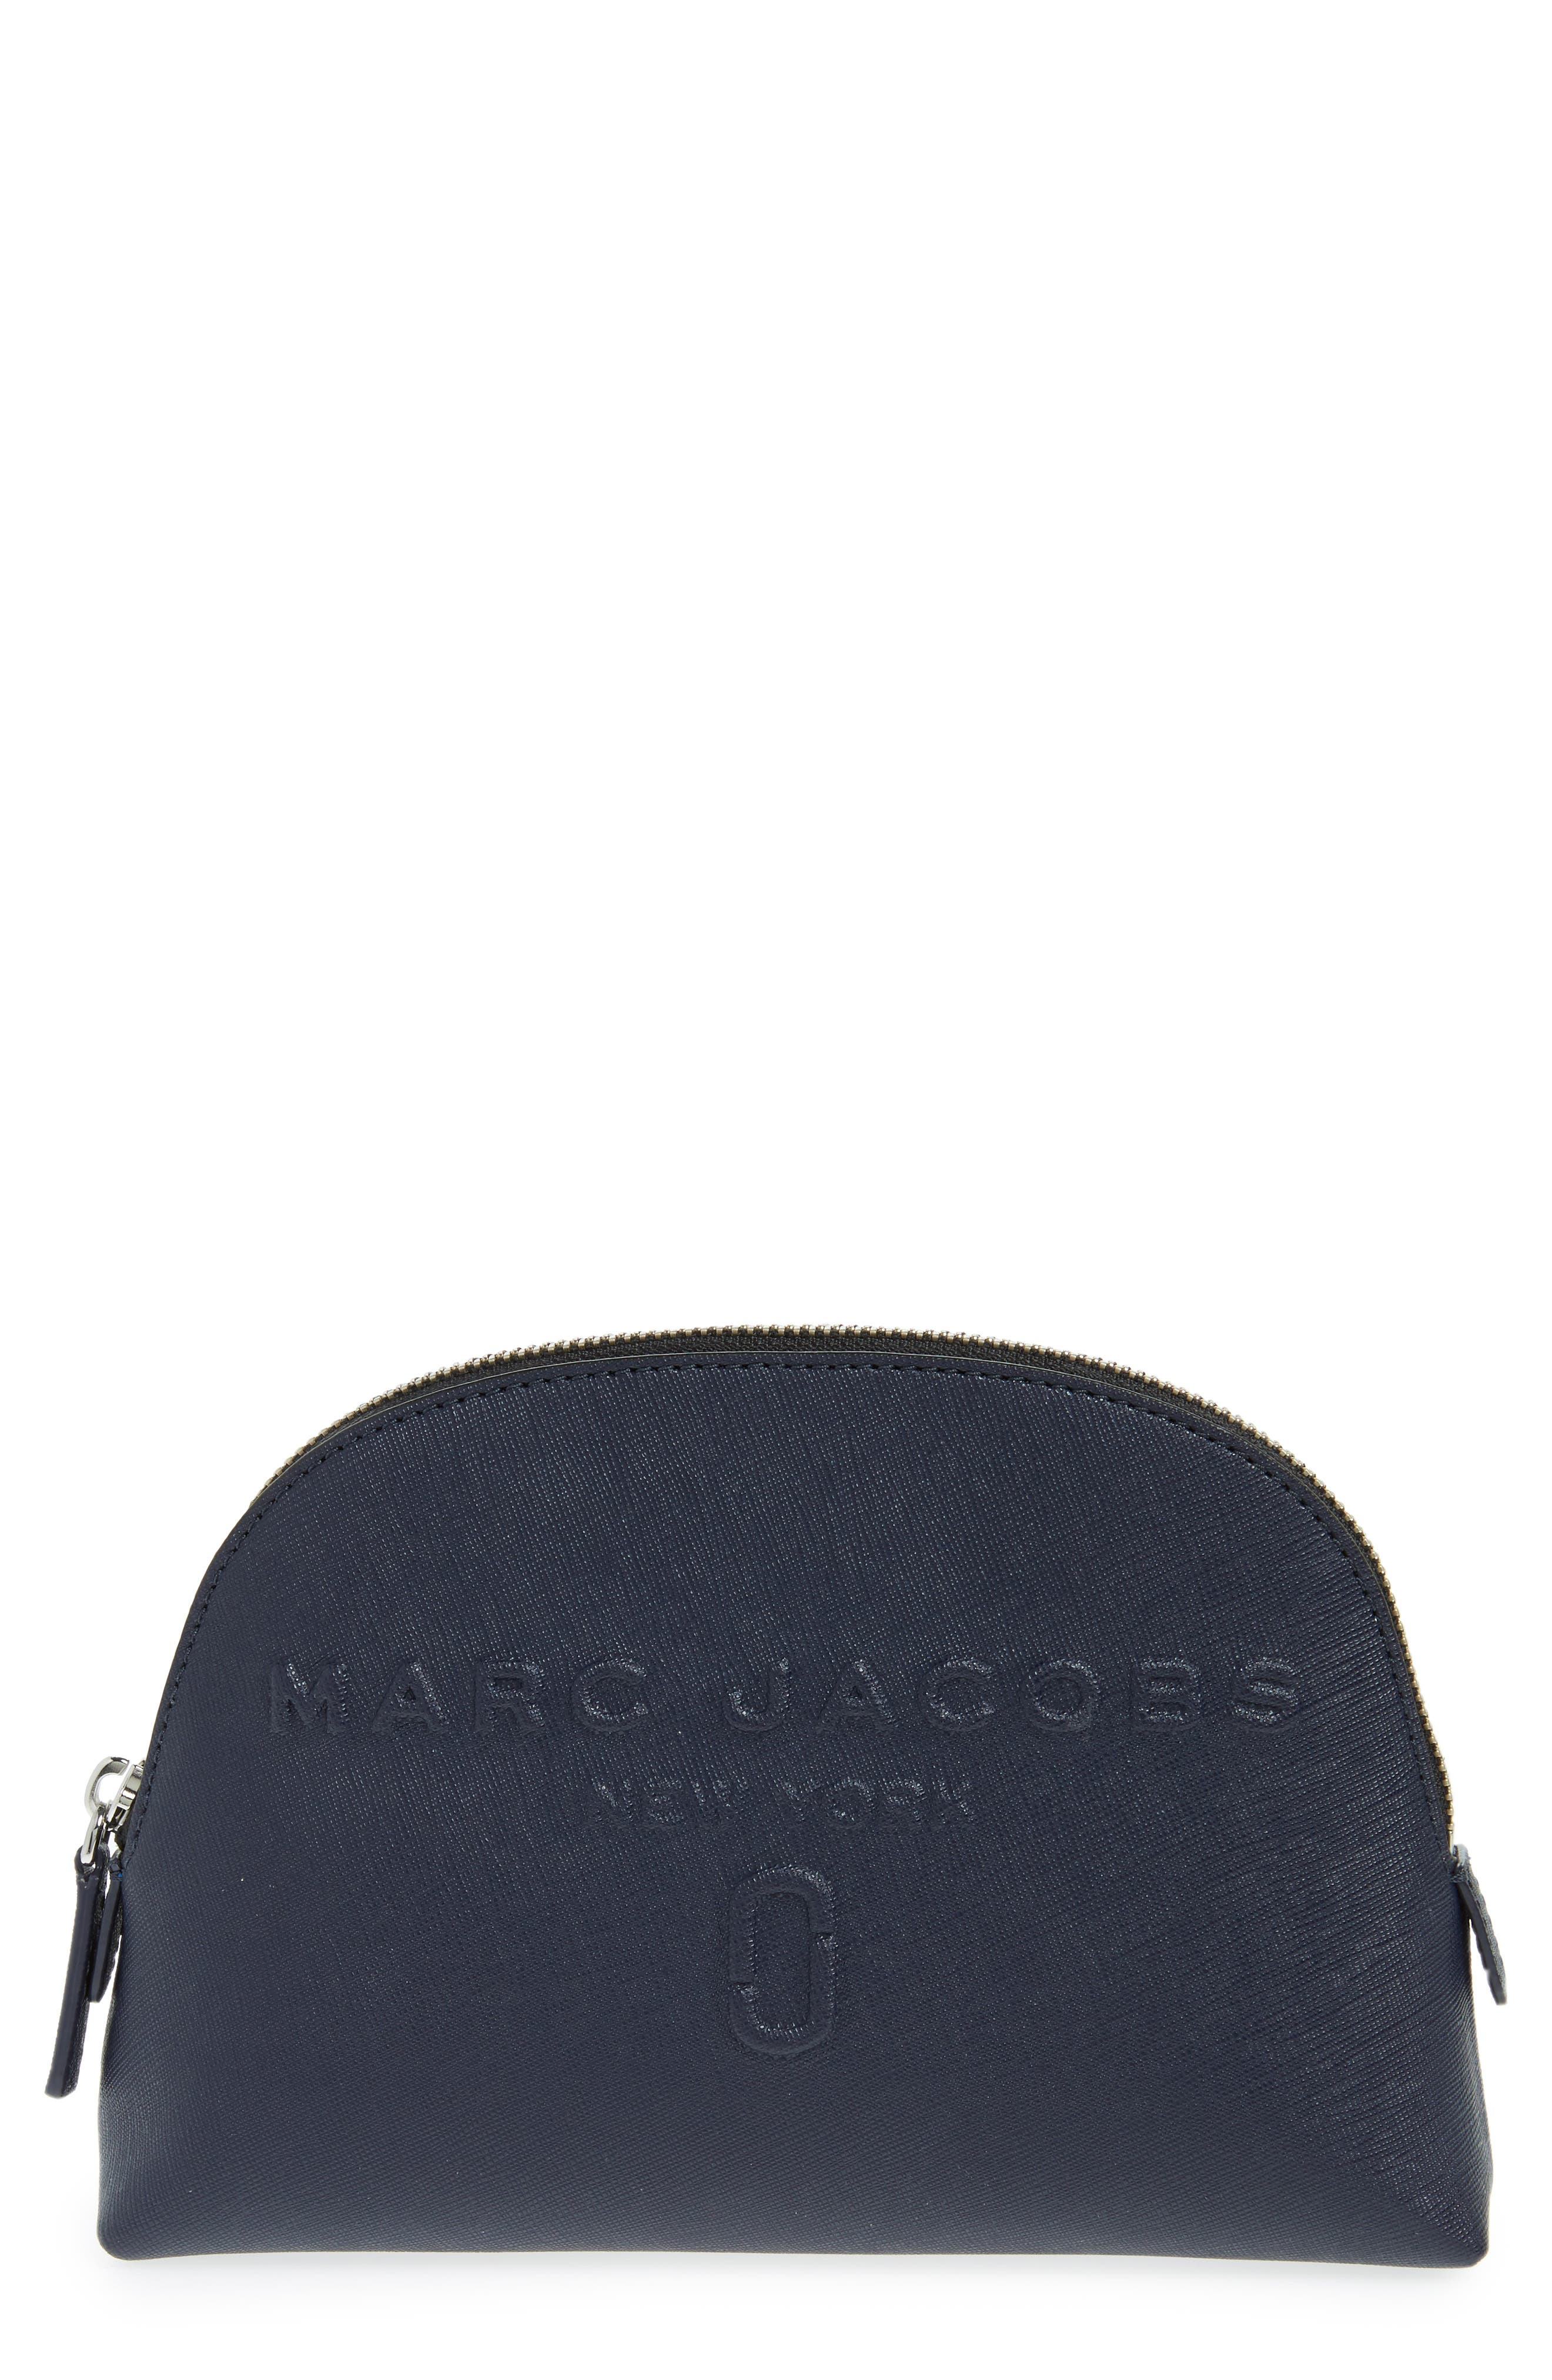 MARC JACOBS Logo Embossed Leather Cosmetics Bag